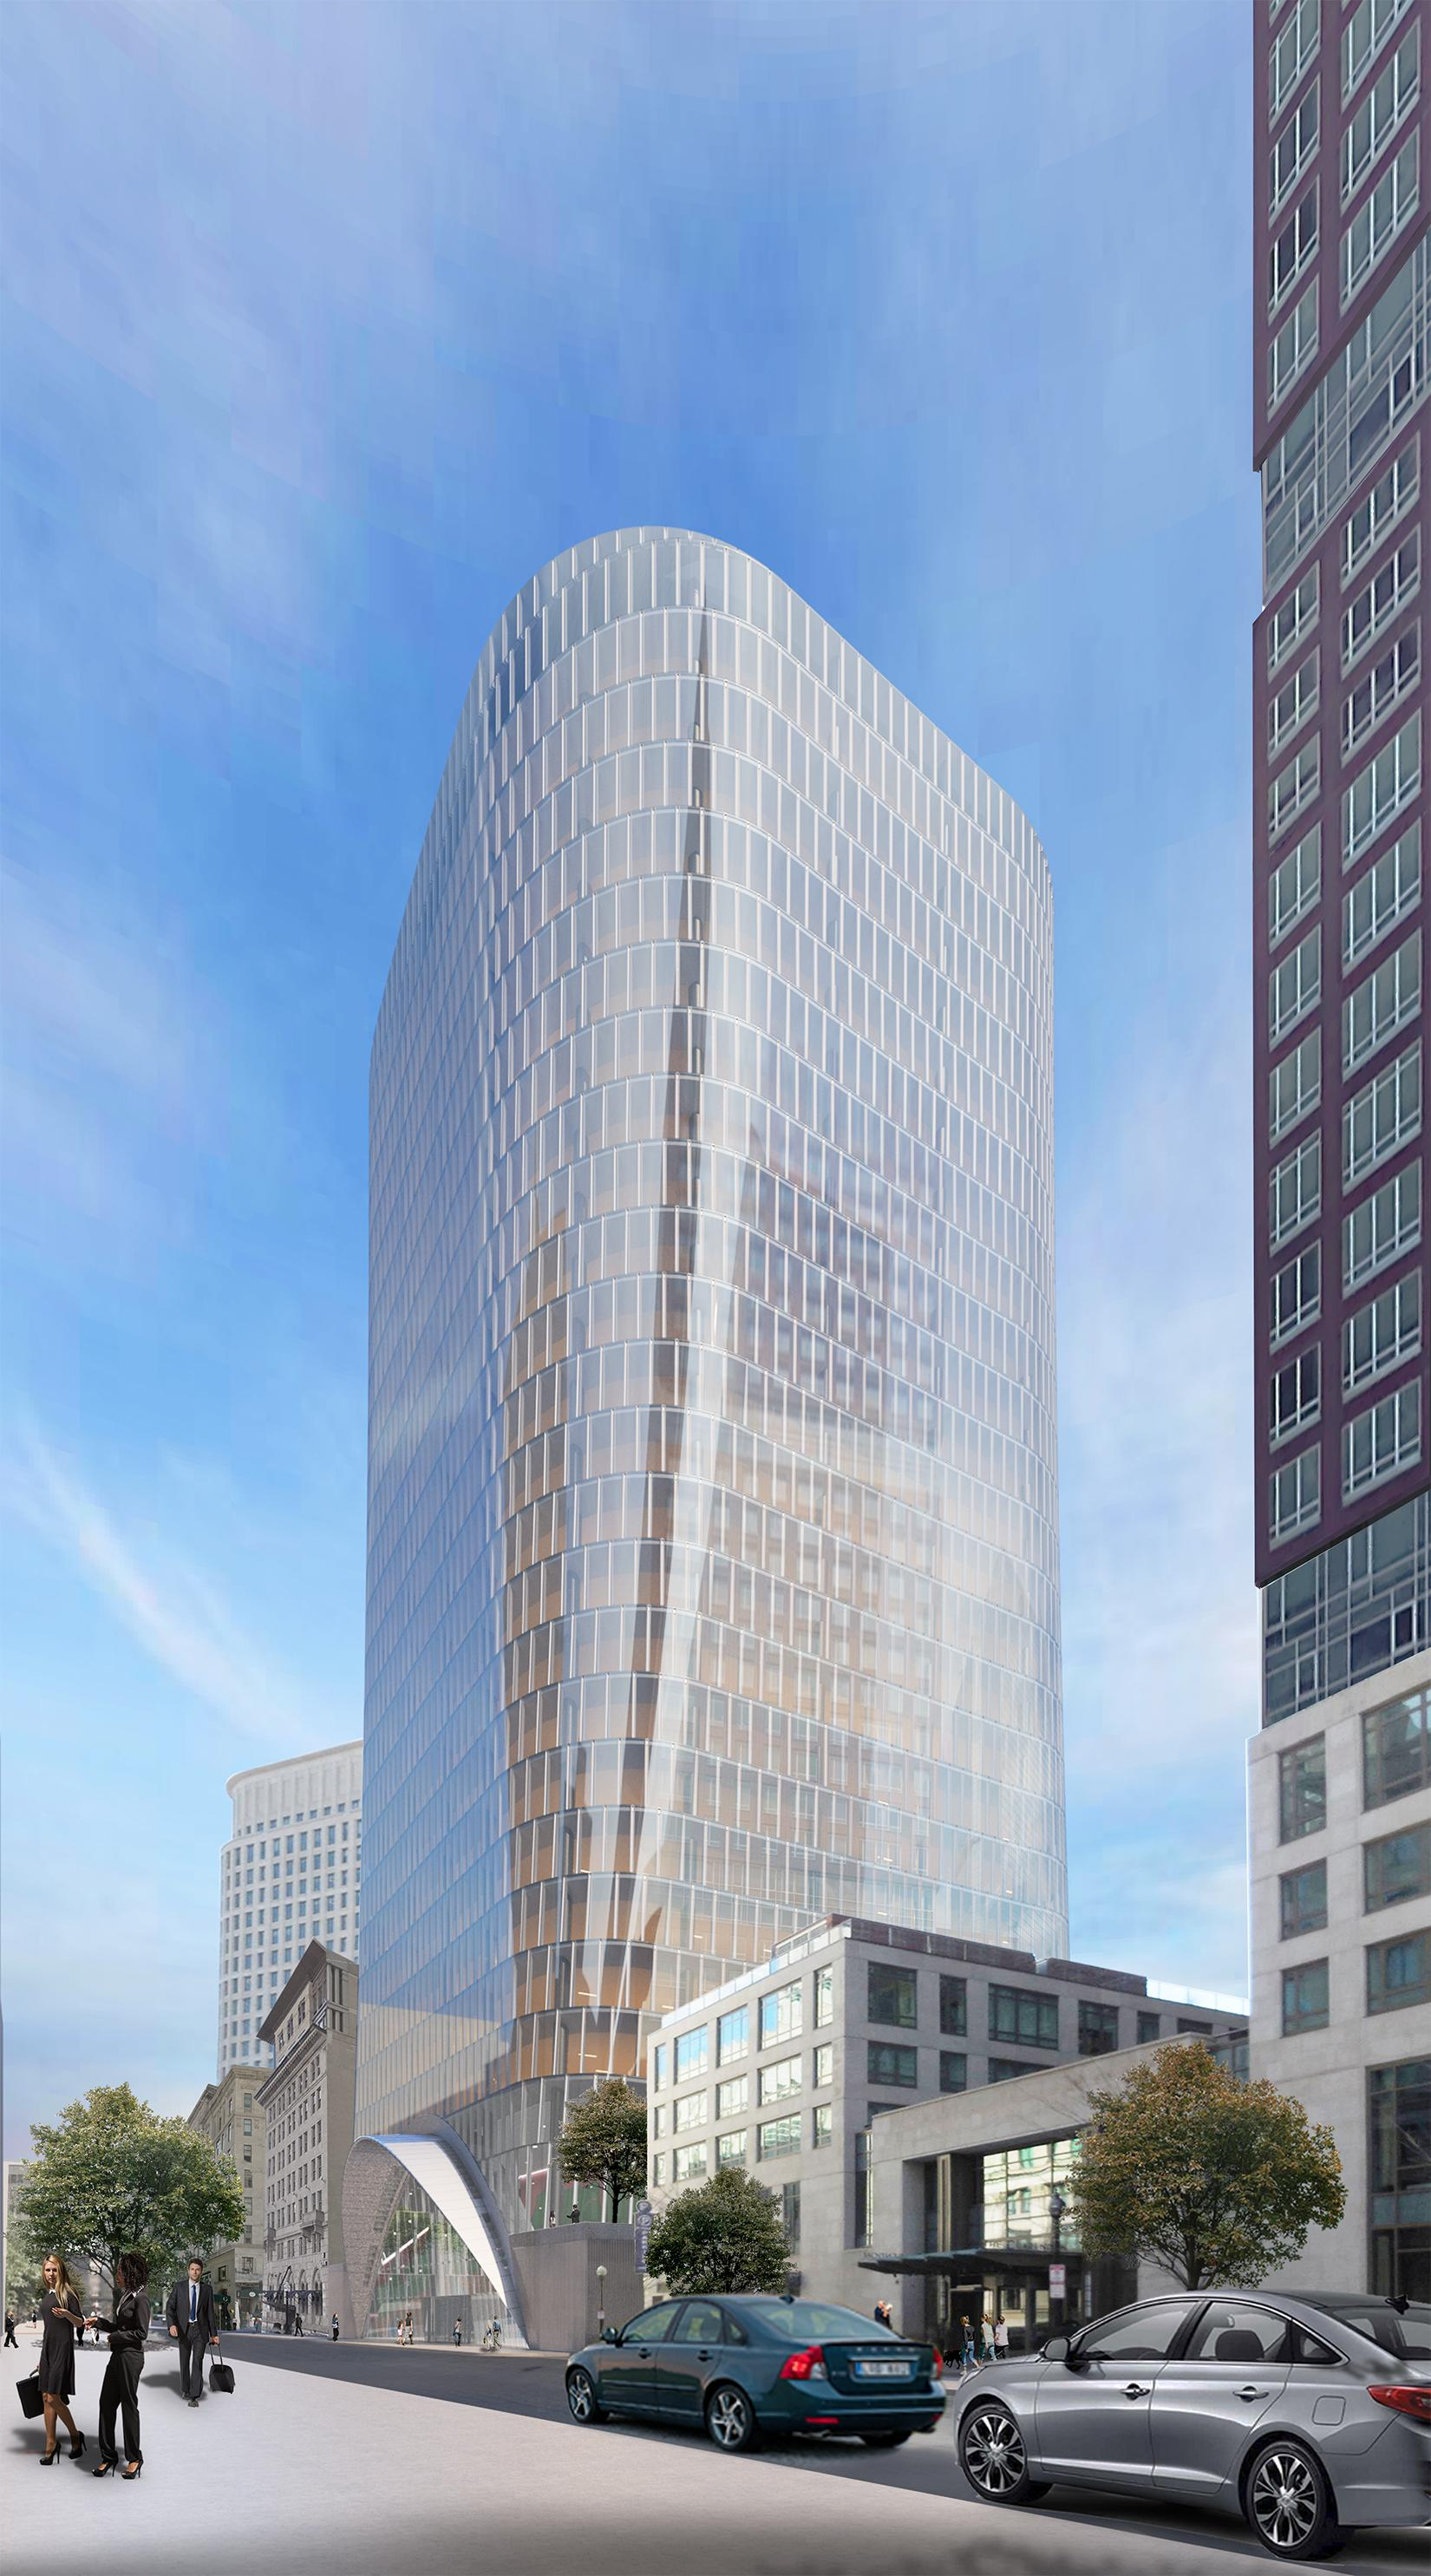 Rendering of a curvy, glassy office tower.